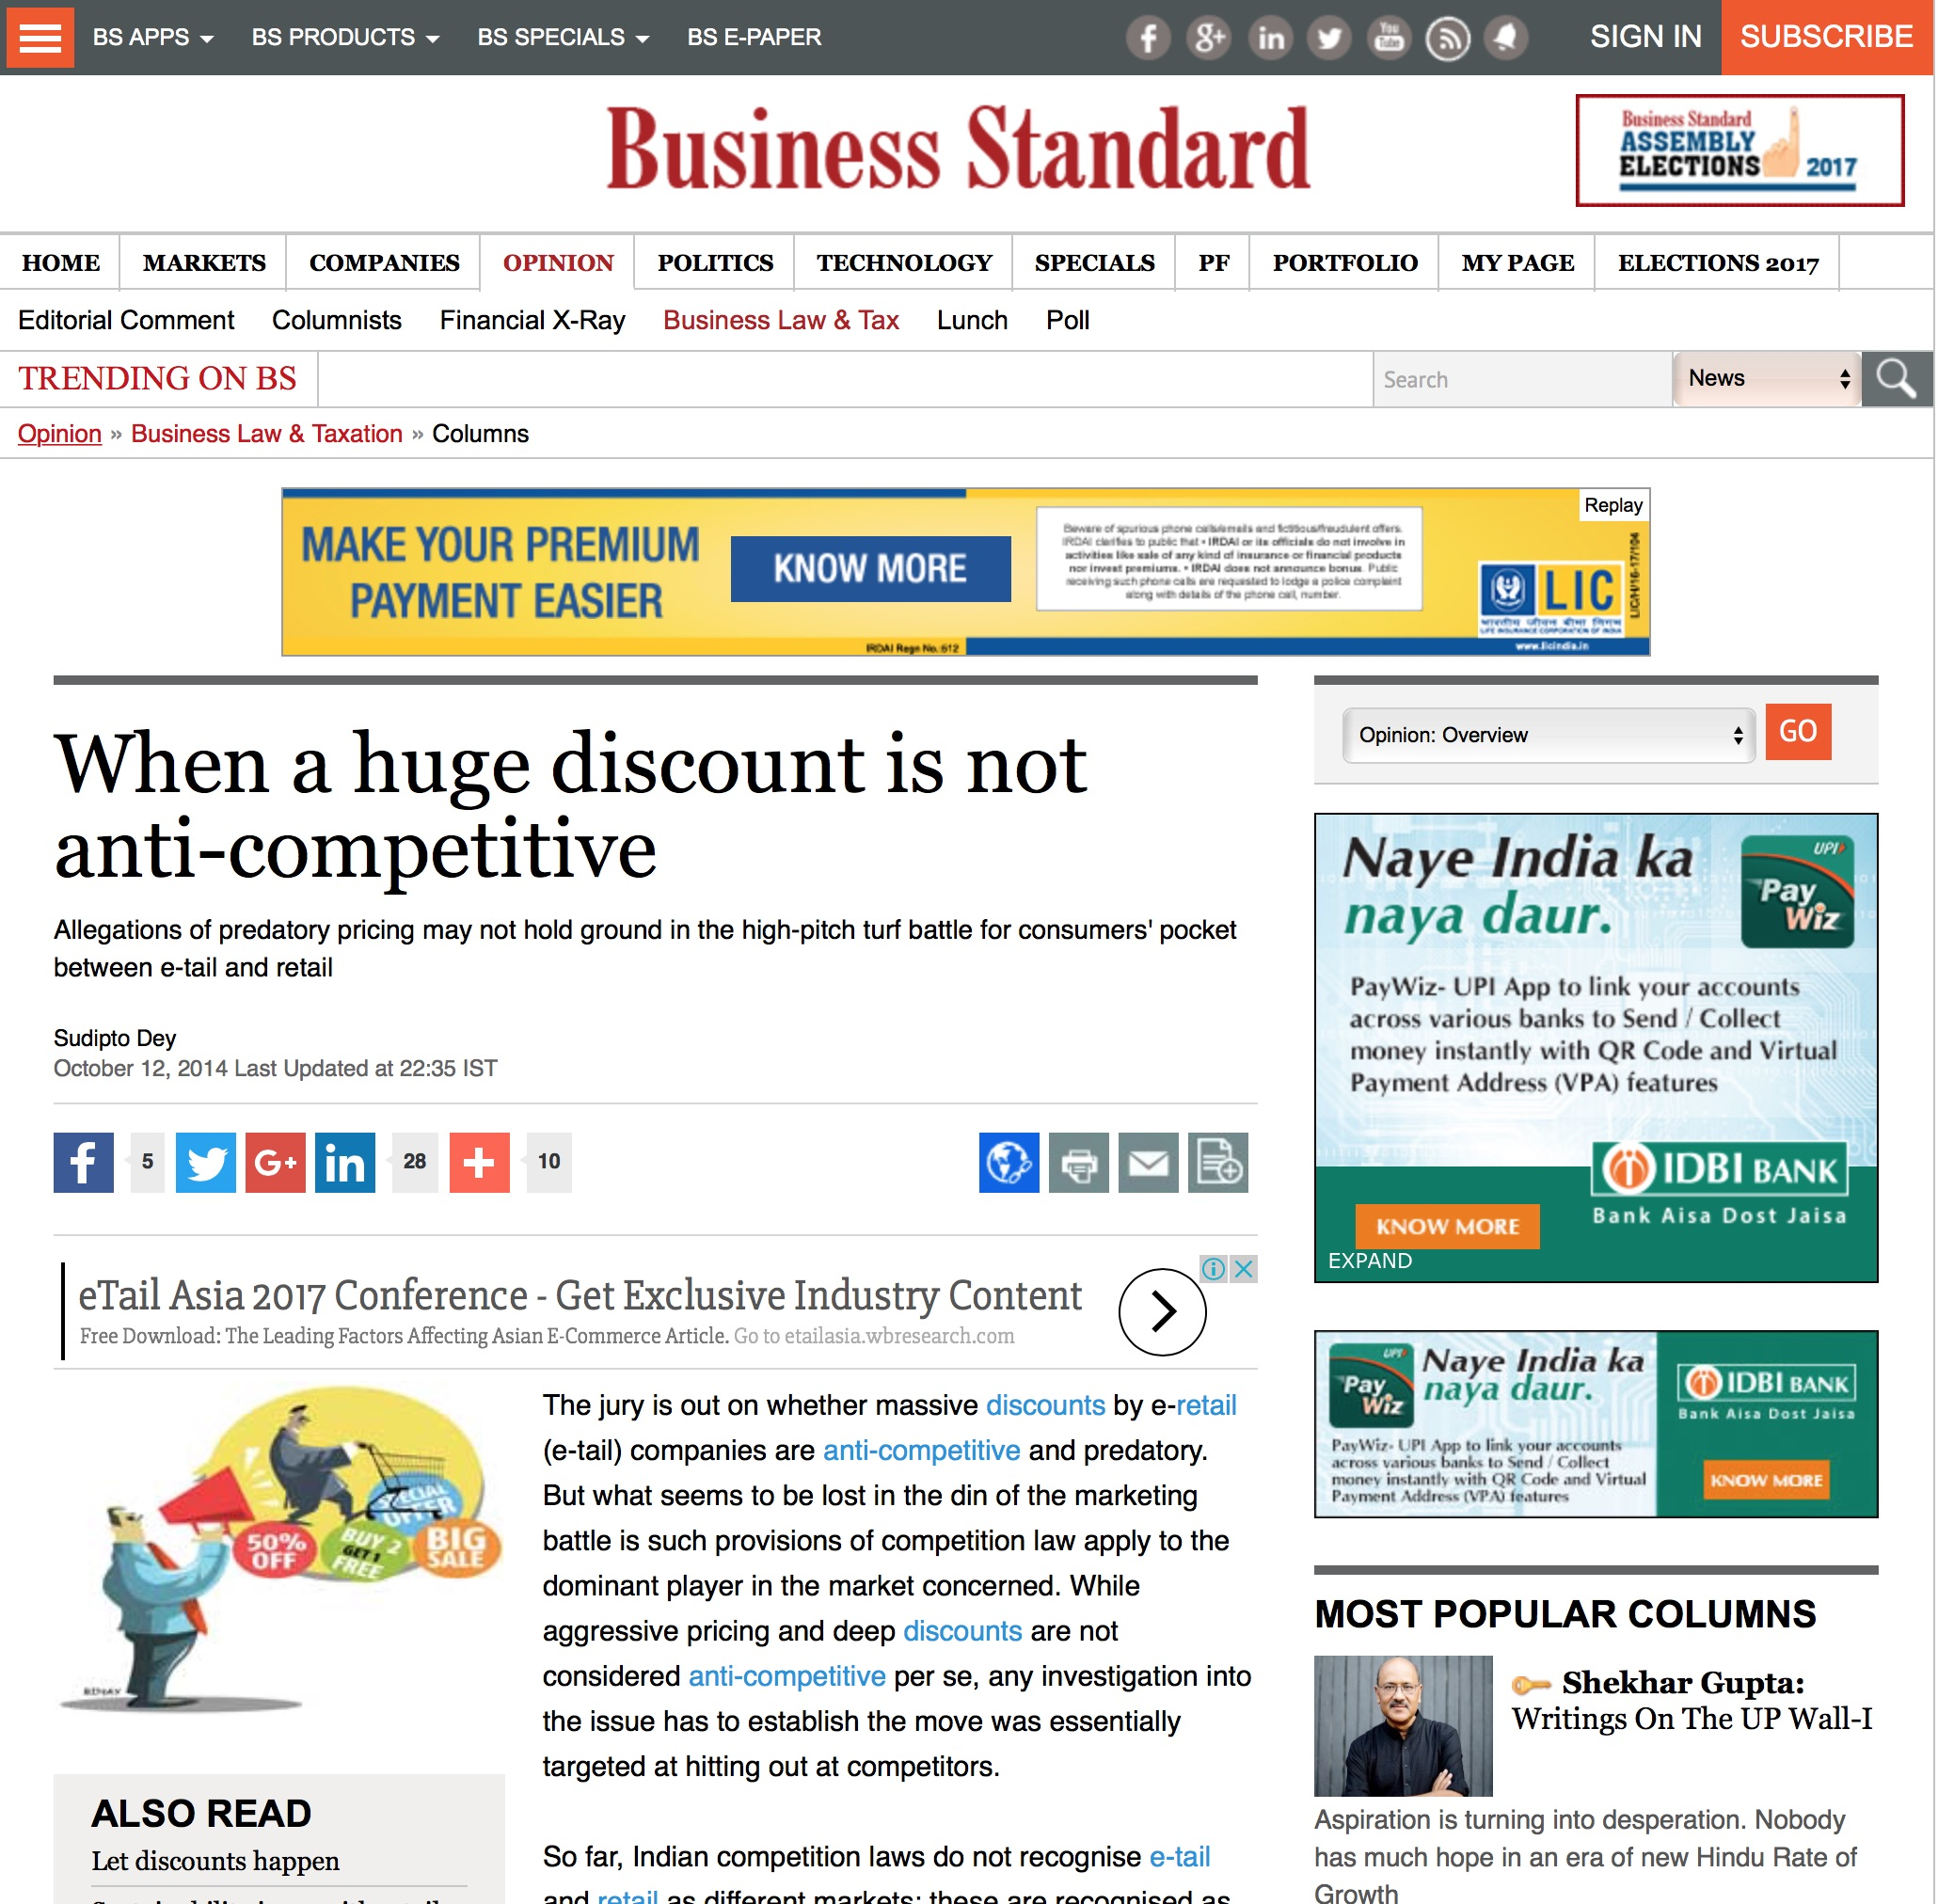 Competitive Pricing: When A Huge Discount Is Not Anti-competitive